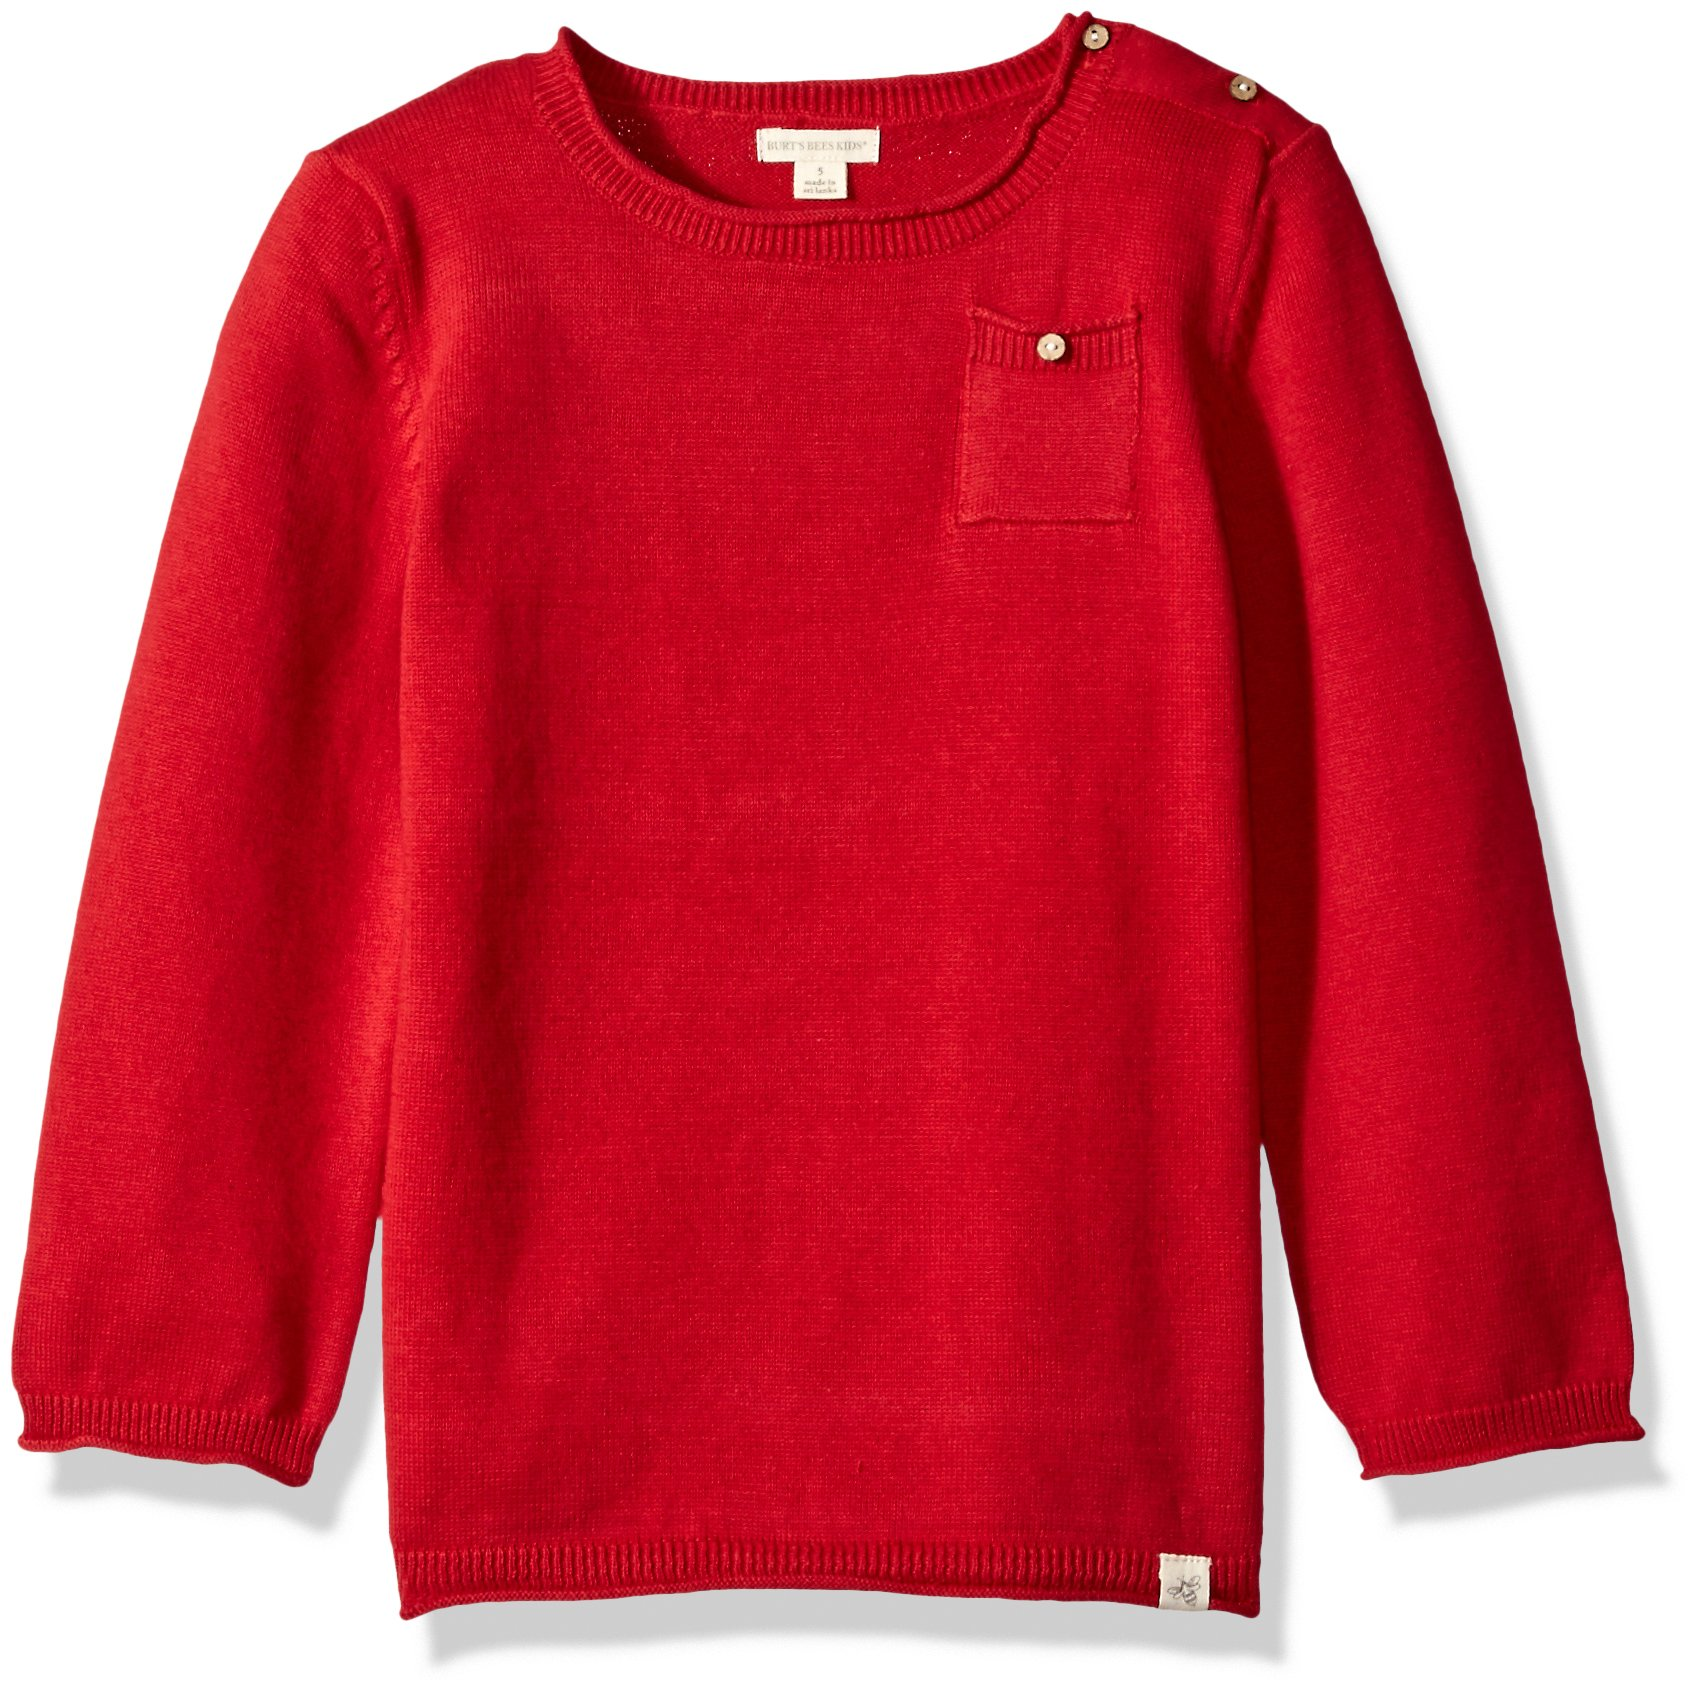 Burt's Bees Baby Unisex Baby Sweatshirts, Lightweight Zip-Up Jackets & Hooded Coats, Organic Cotton, Cranberry Sweater, 7 Years by Burt's Bees Baby